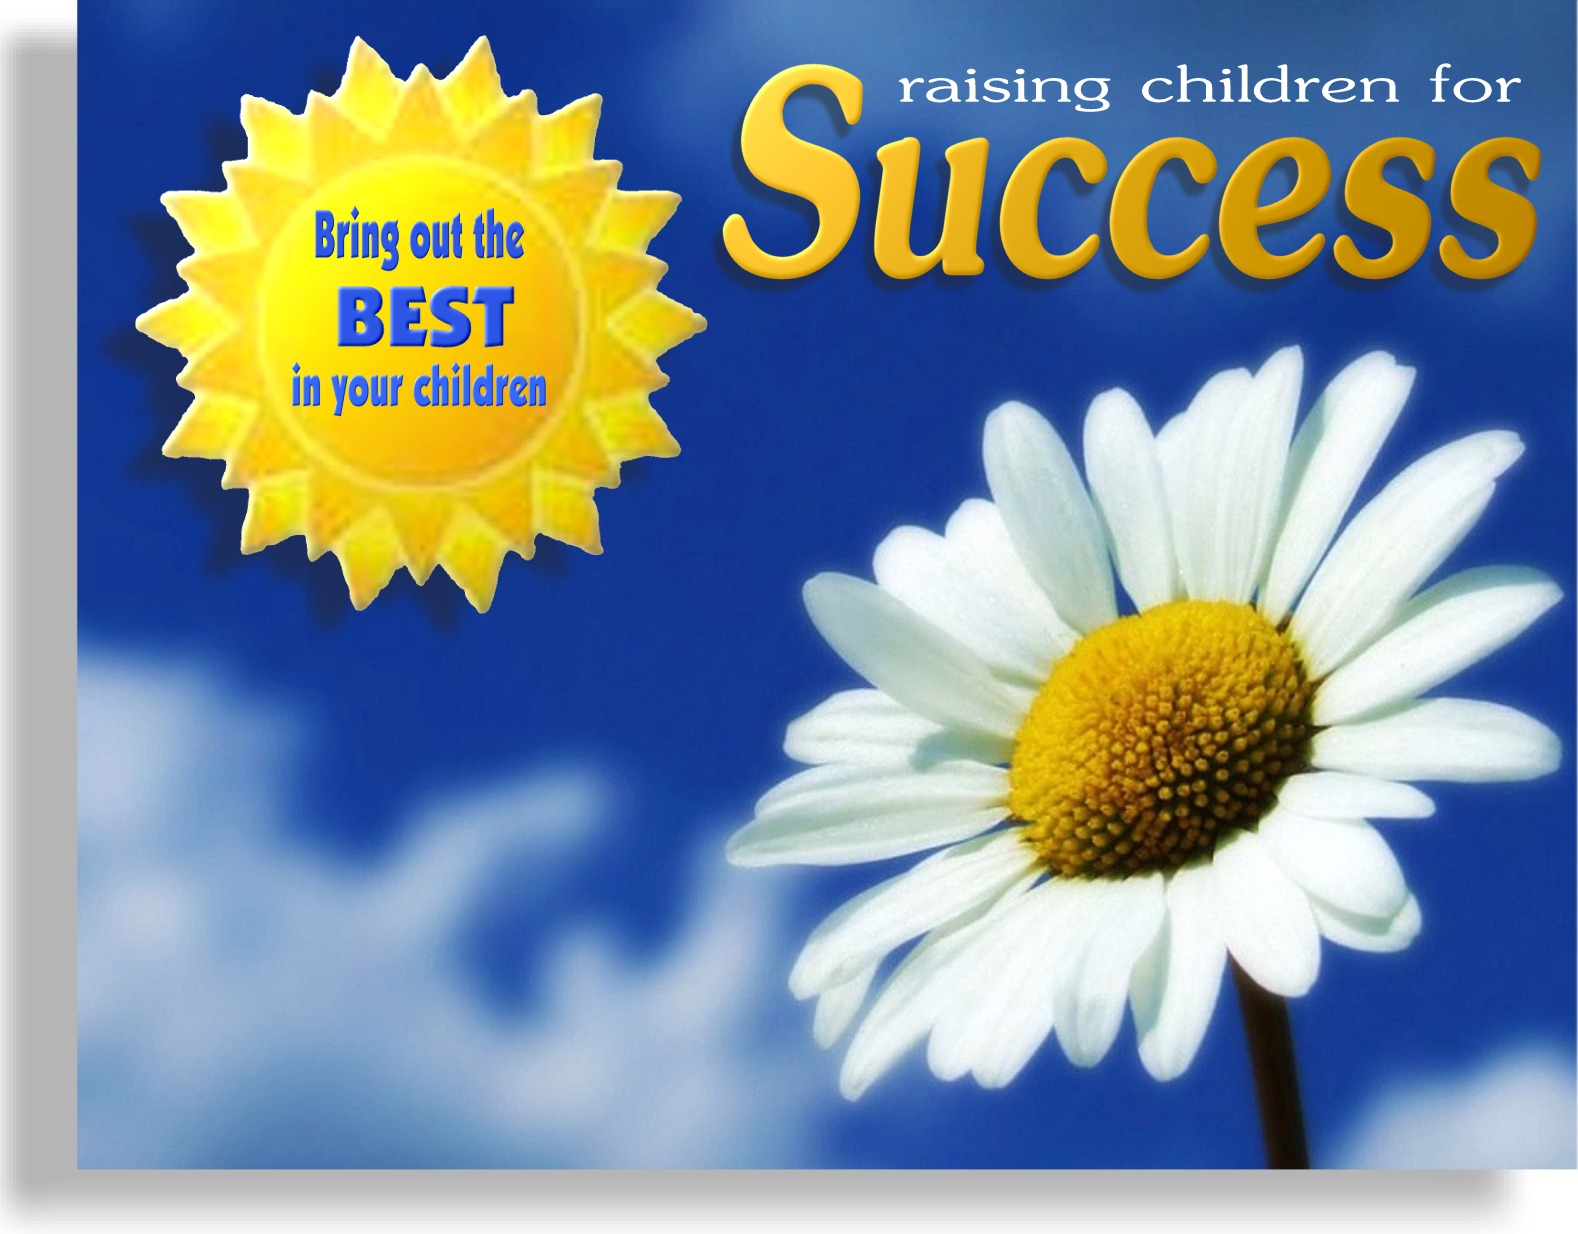 raising children for success web 1.jpg